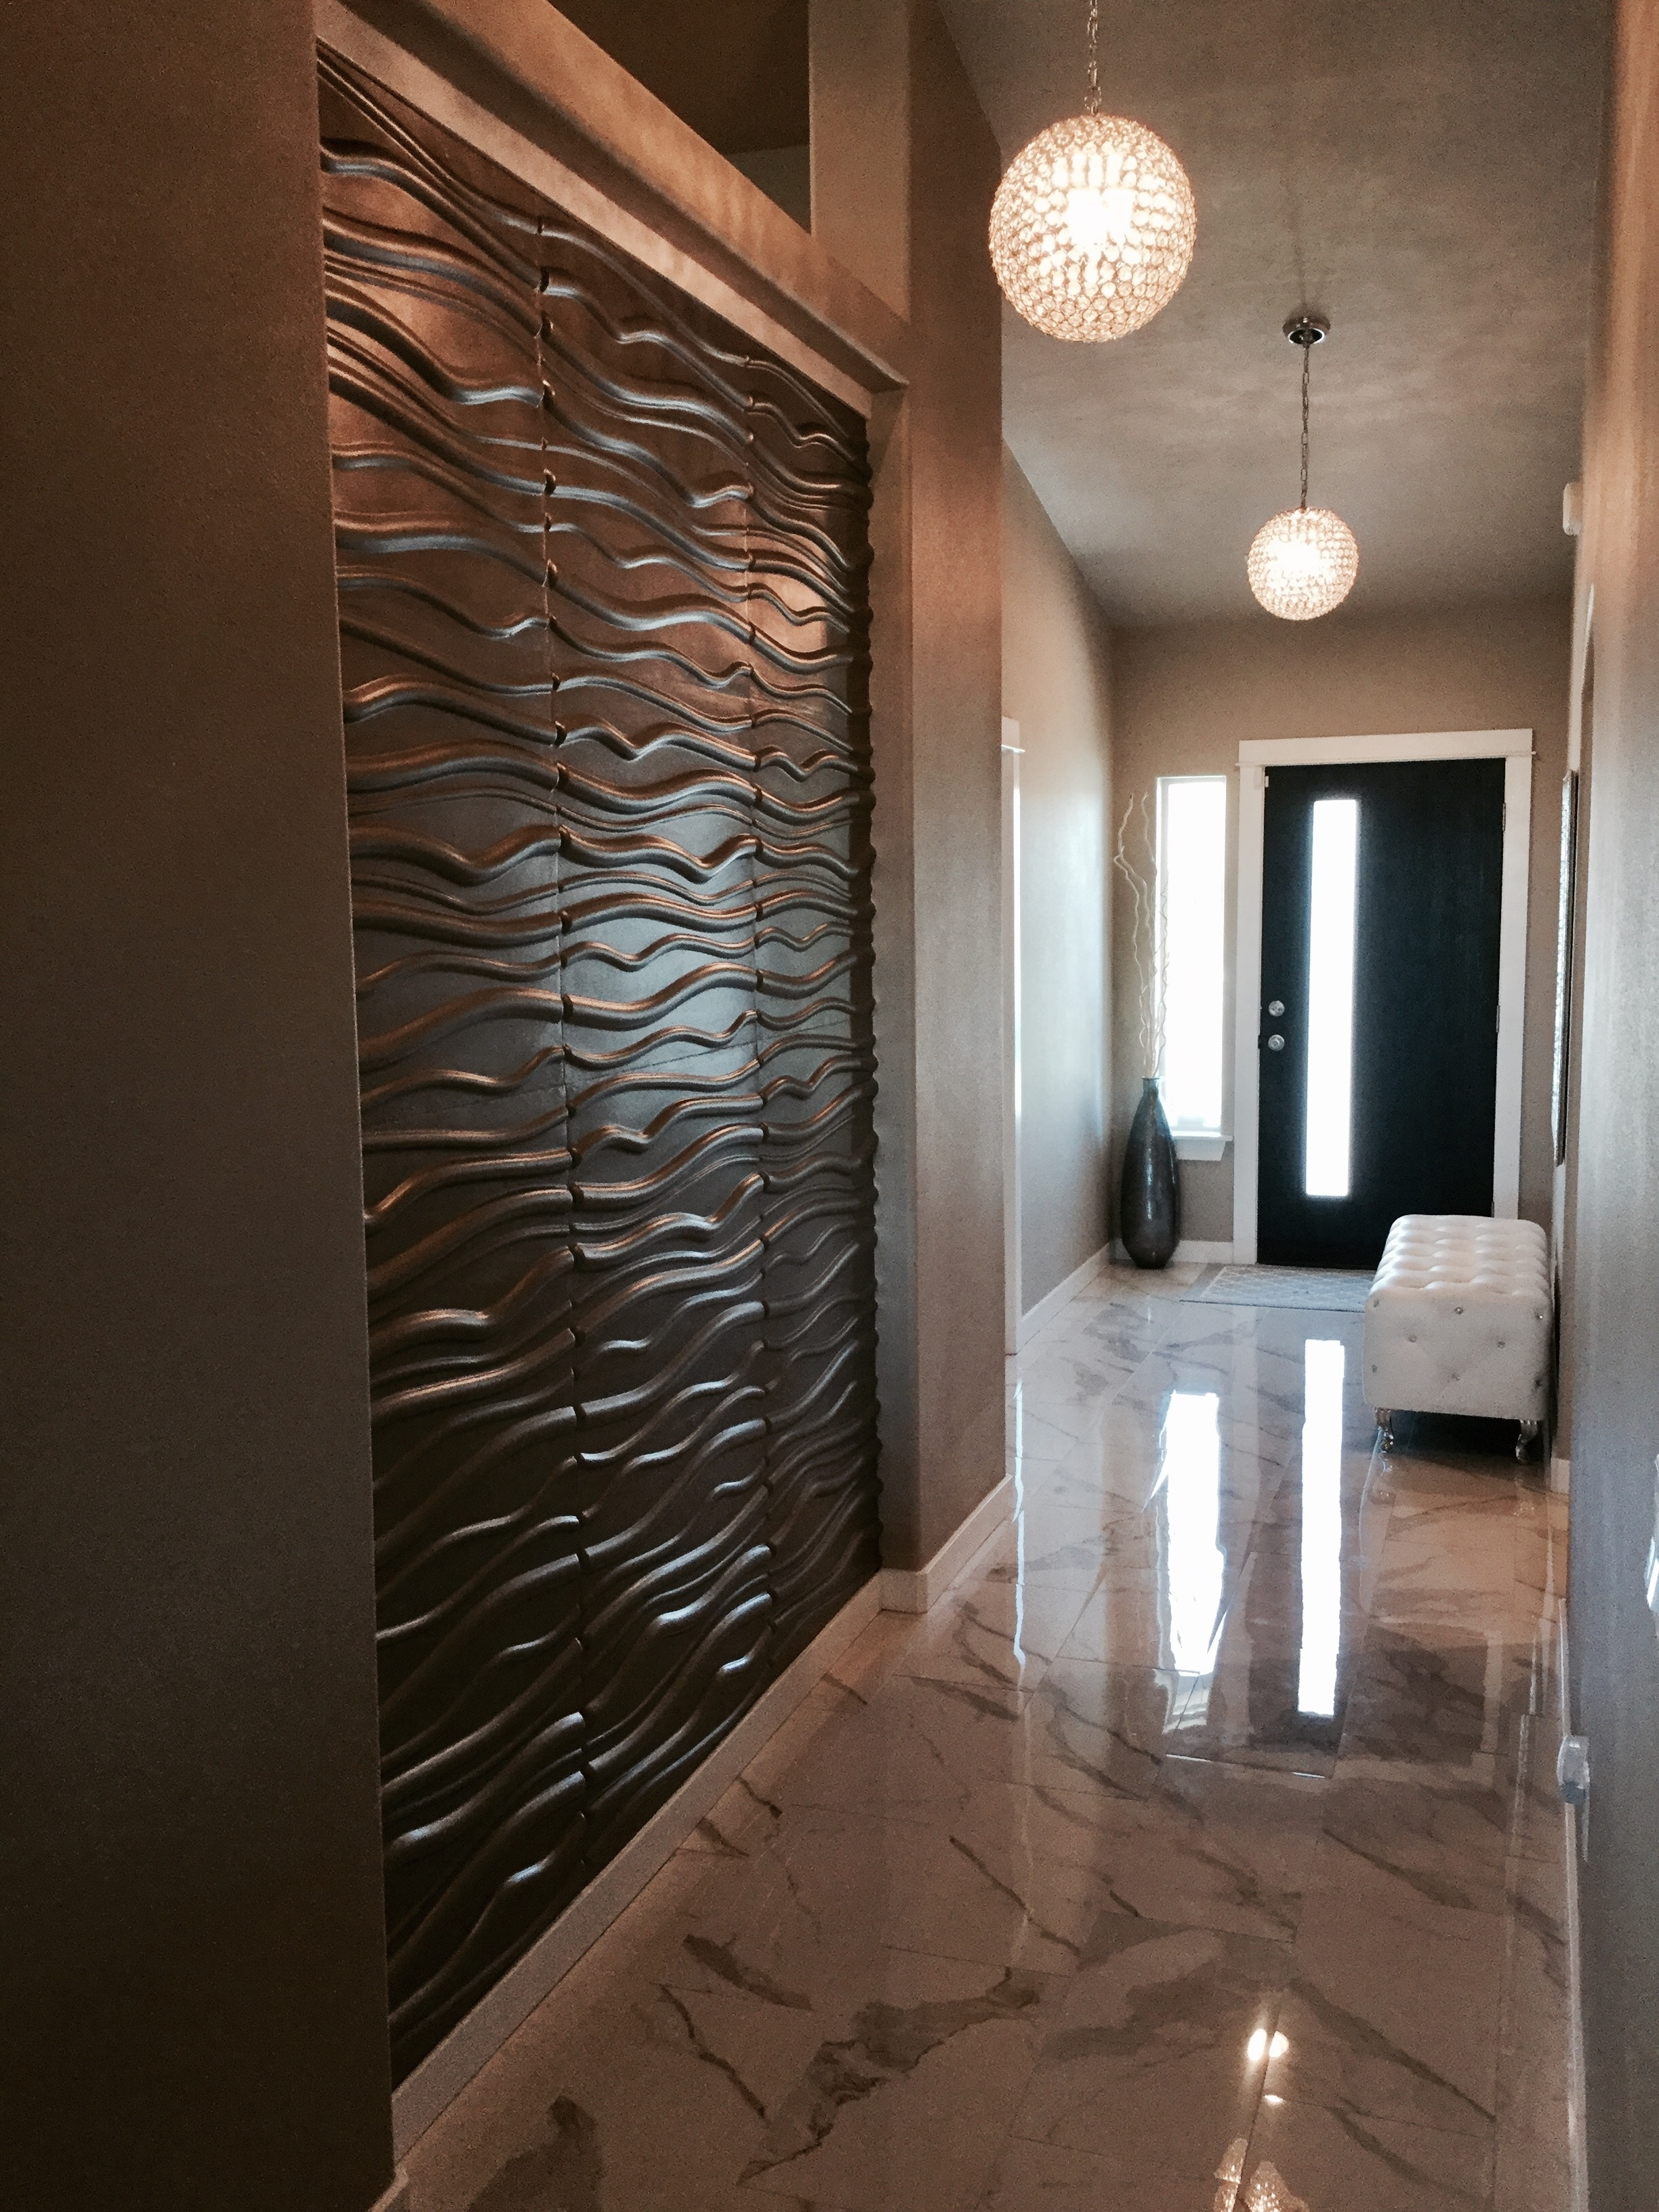 Newest Painting 3d Wall Panels With Regard To 3d Wall Panels In Hallway Using Metallic Memories Paint Color (View 6 of 15)